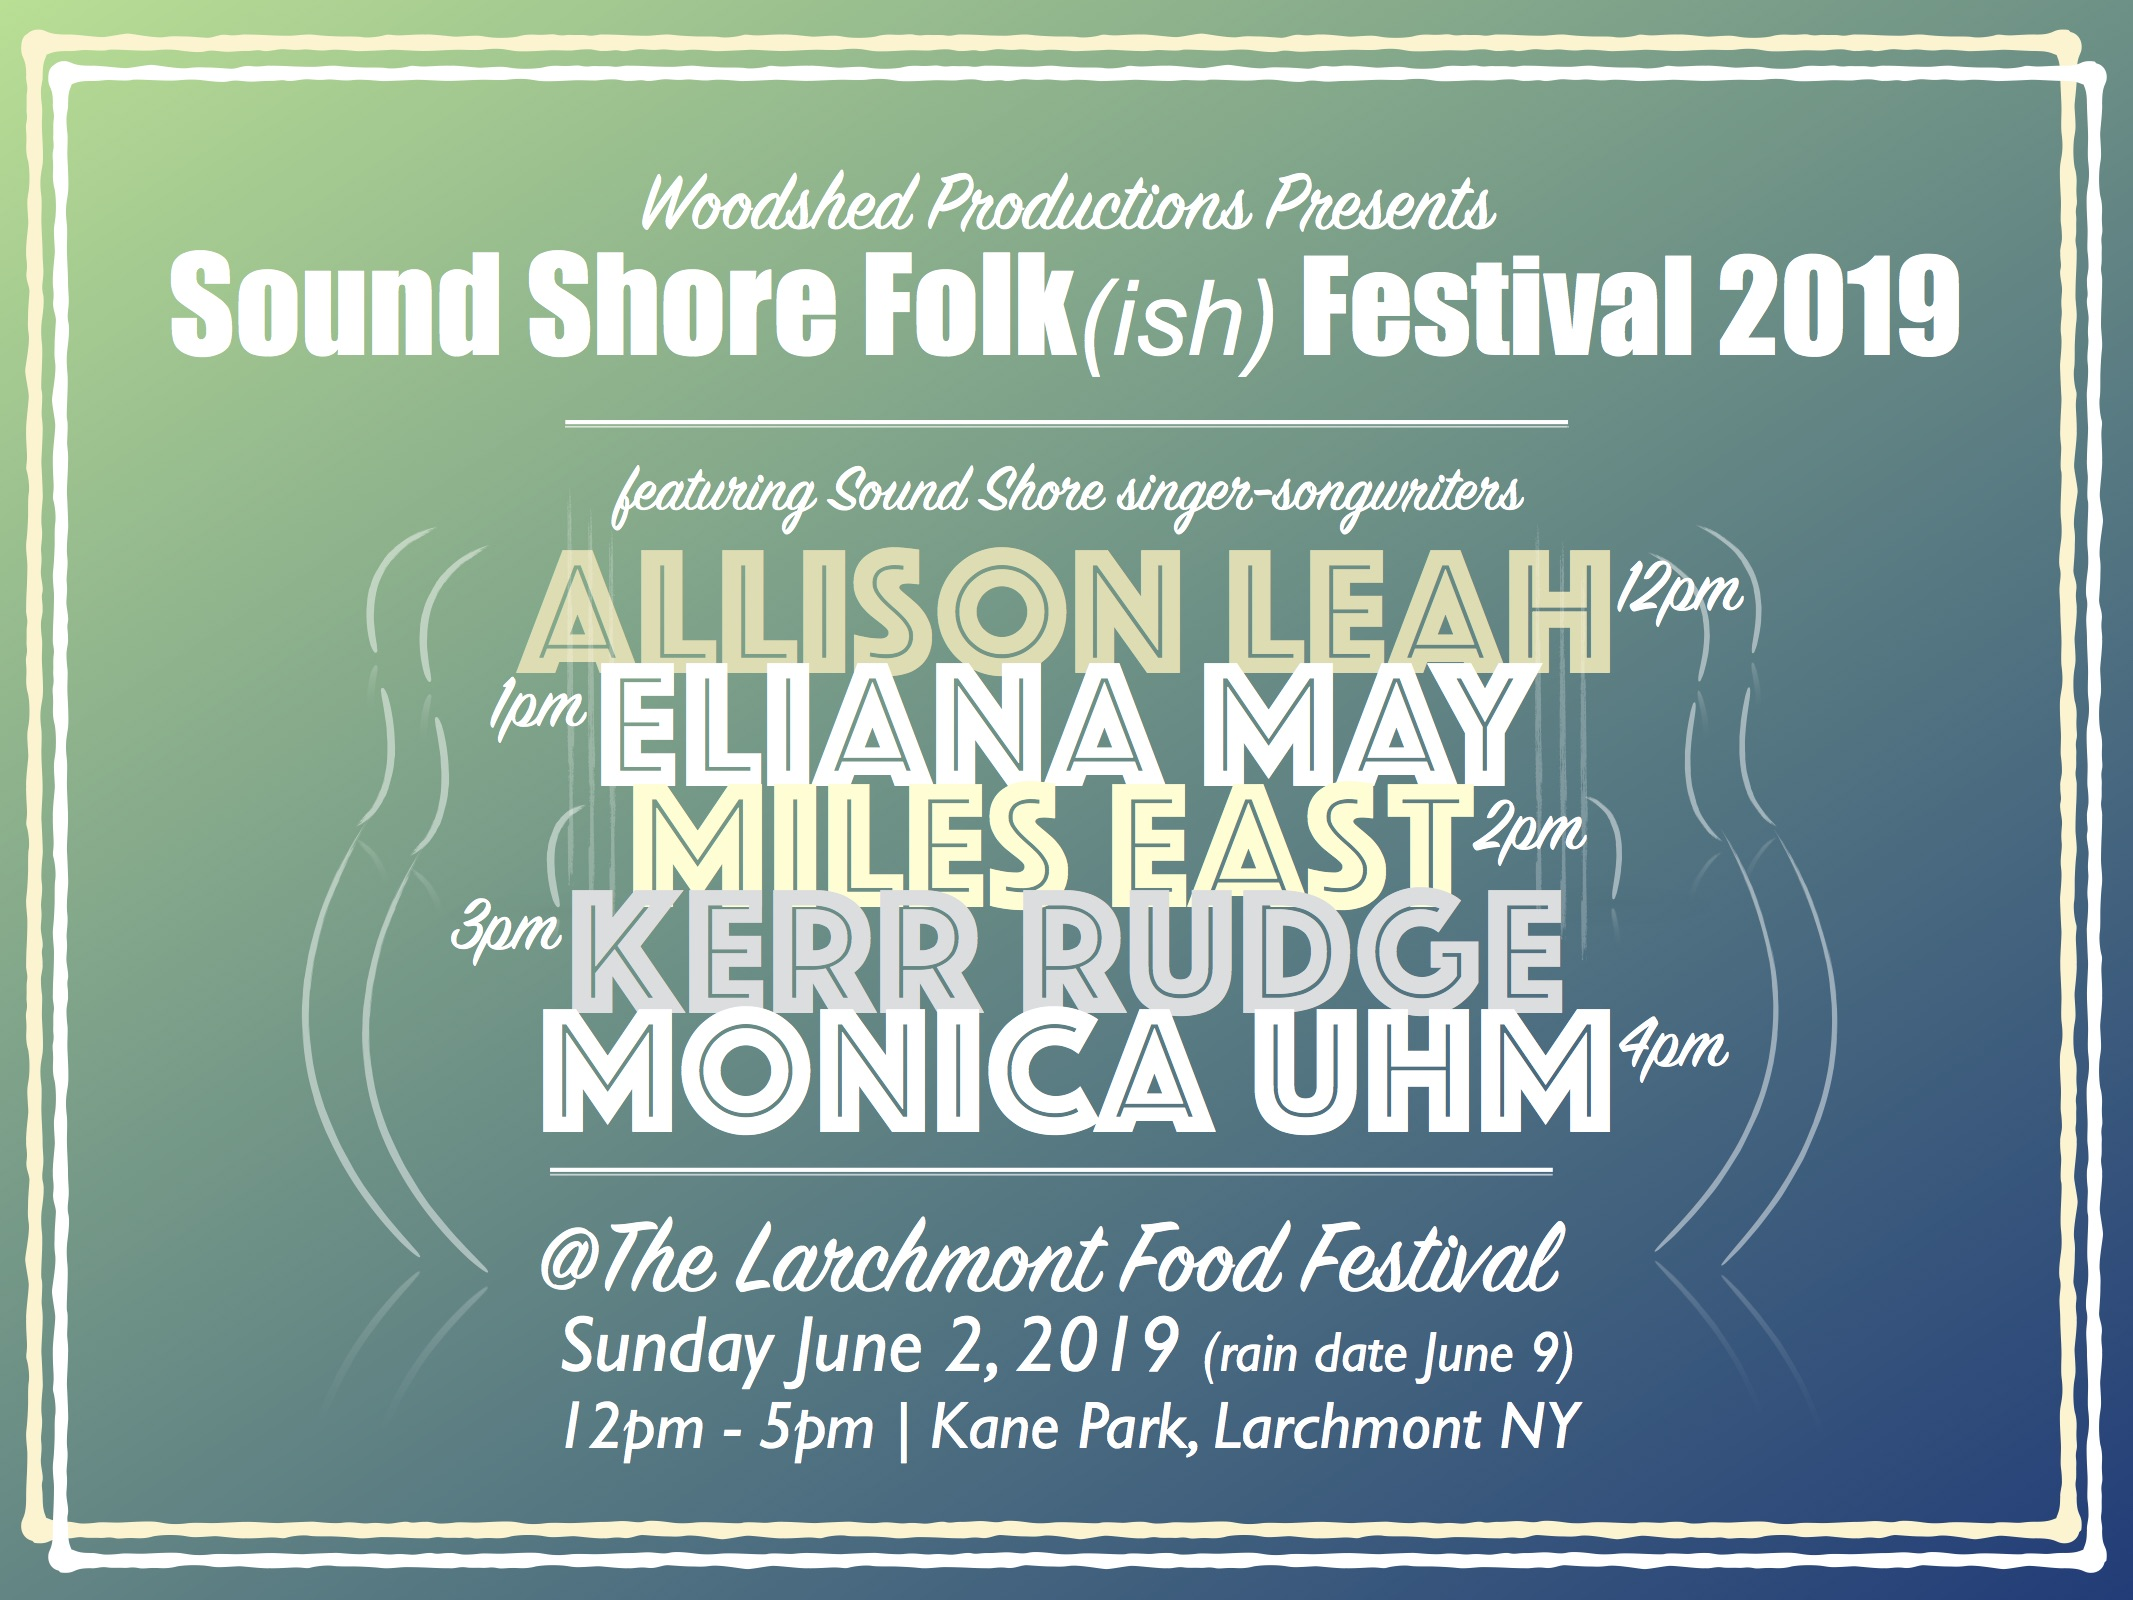 Sound Shore Folk(ish) Festival 2019